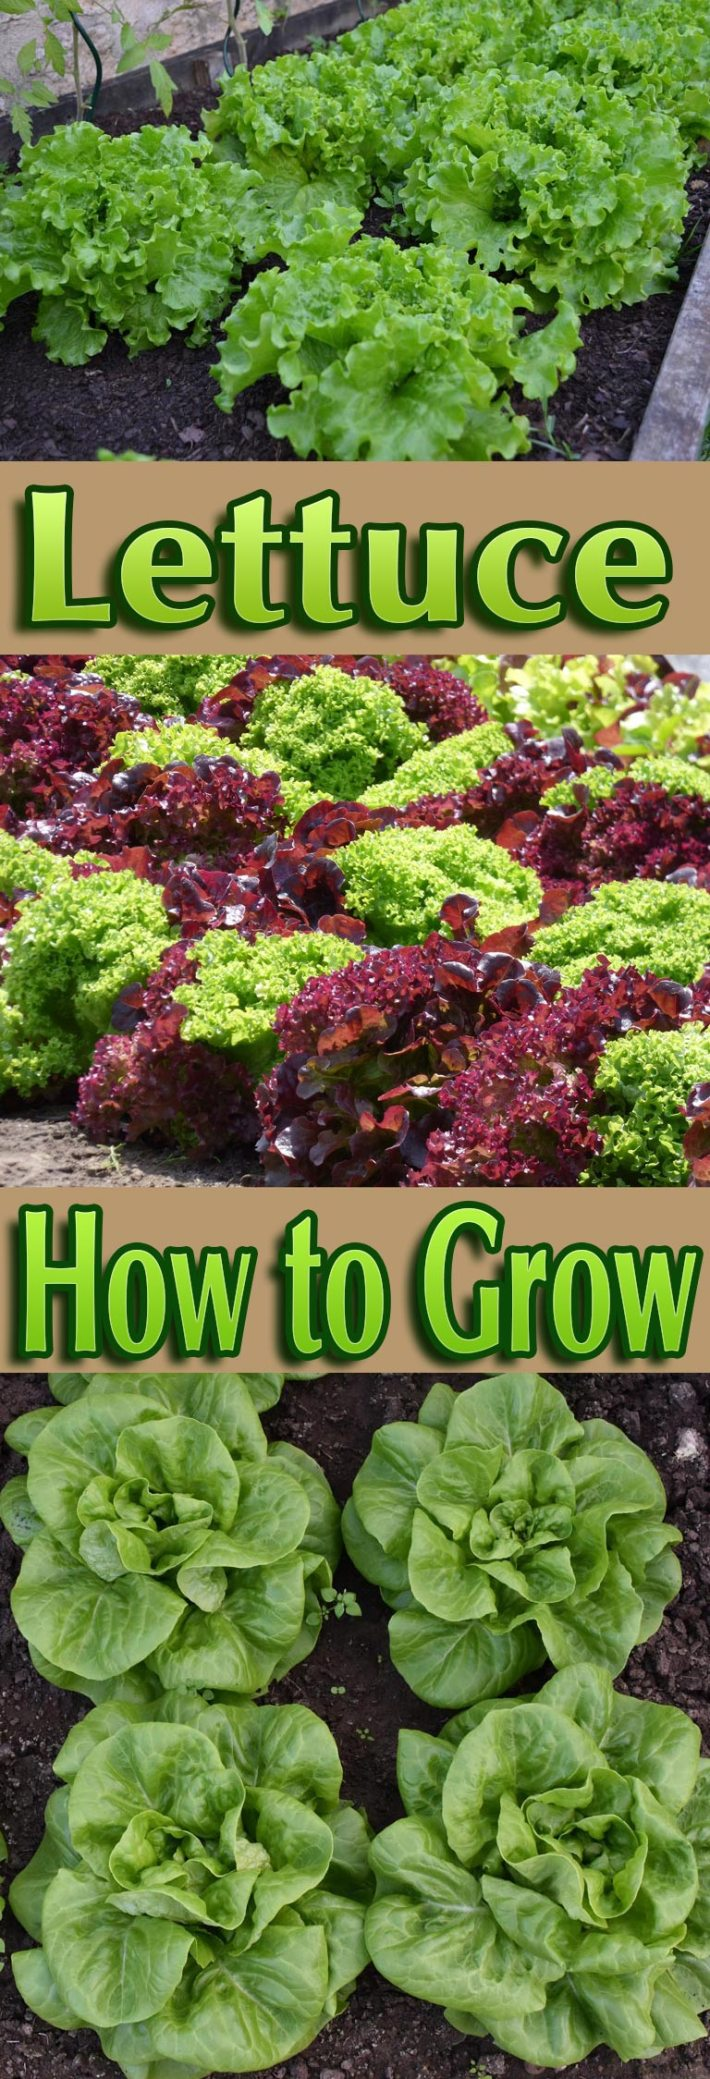 Lettuce – How to Grow